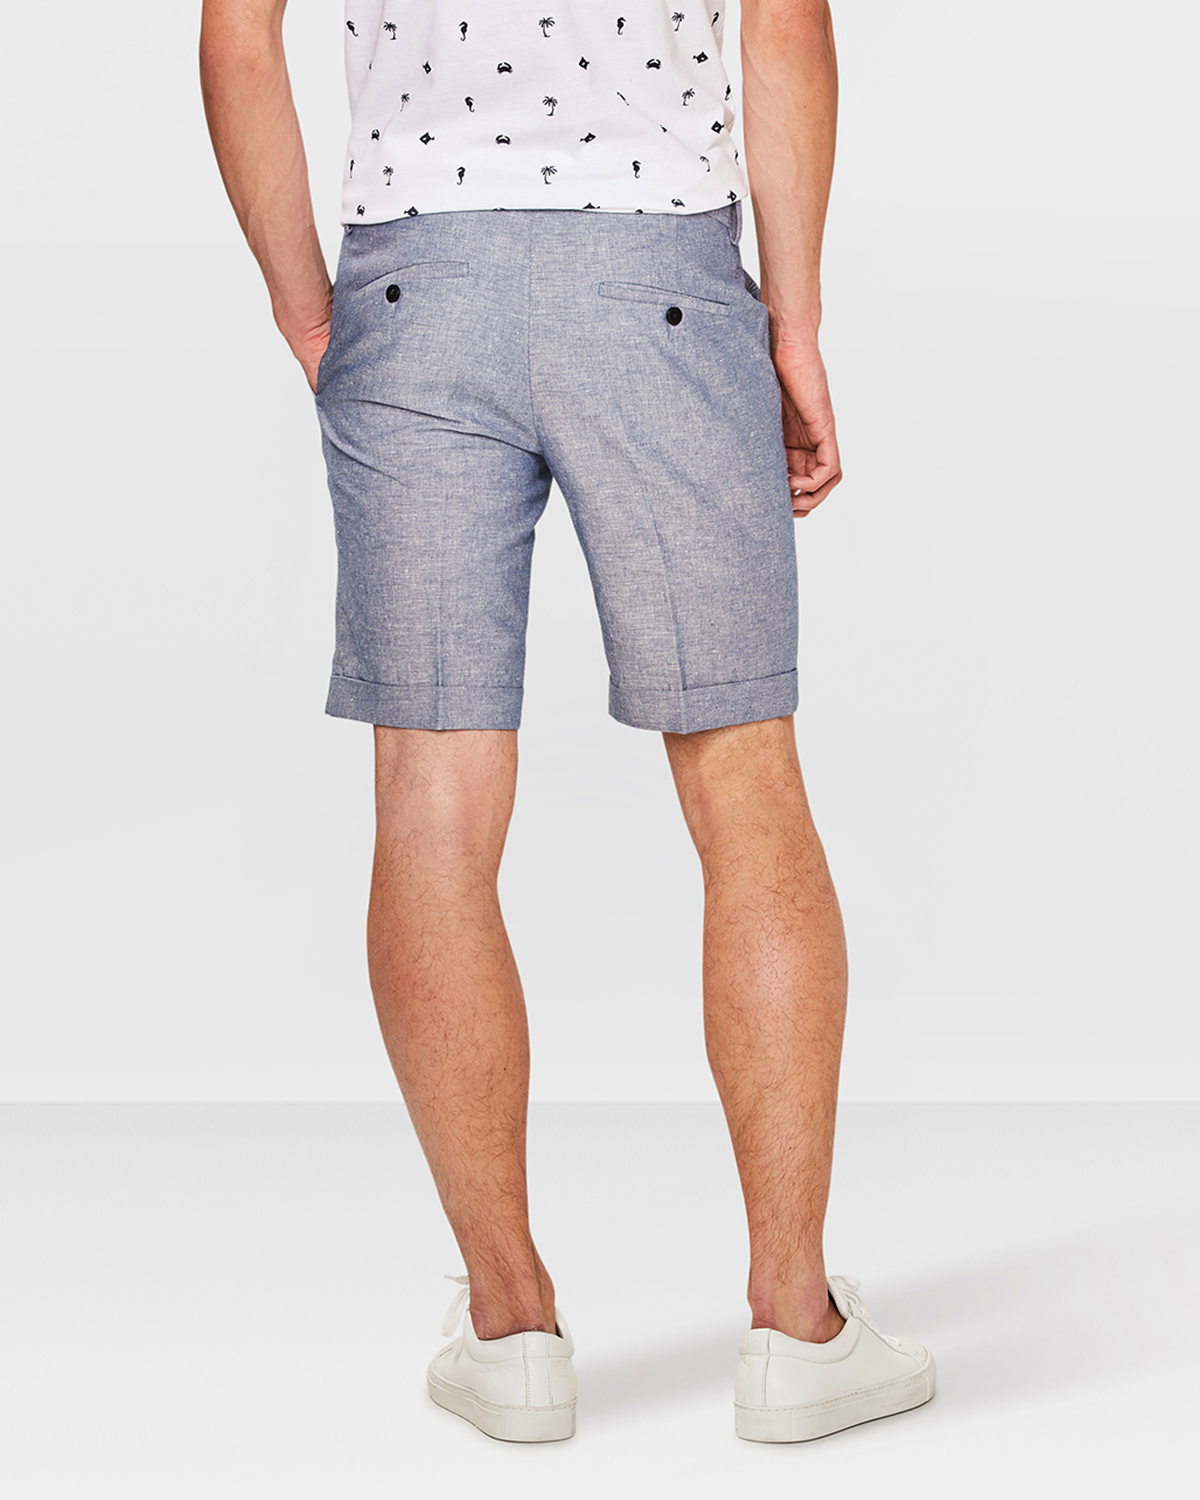 Korte Broek Linnen Heren.Heren Slim Fit Short Brody 79679015 We Fashion